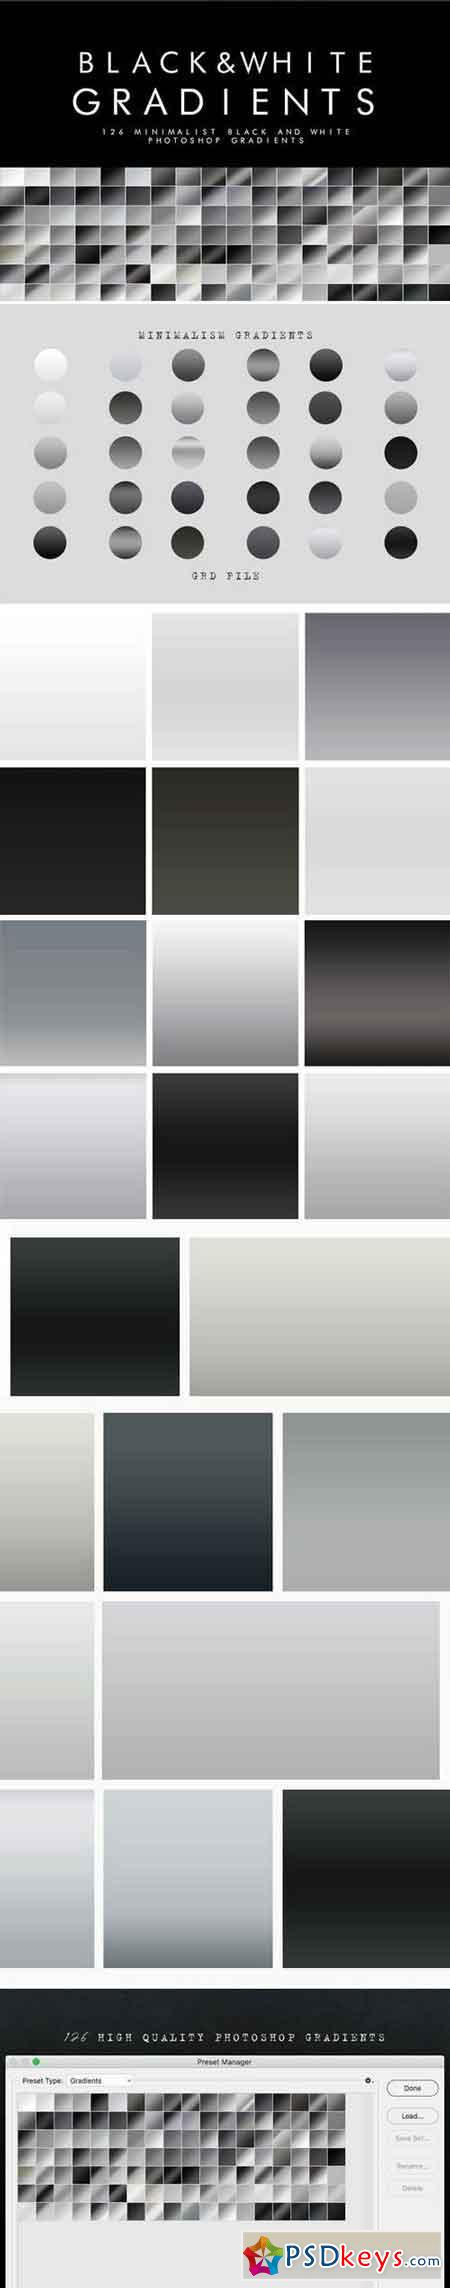 126 Black and White Gradients 21925521